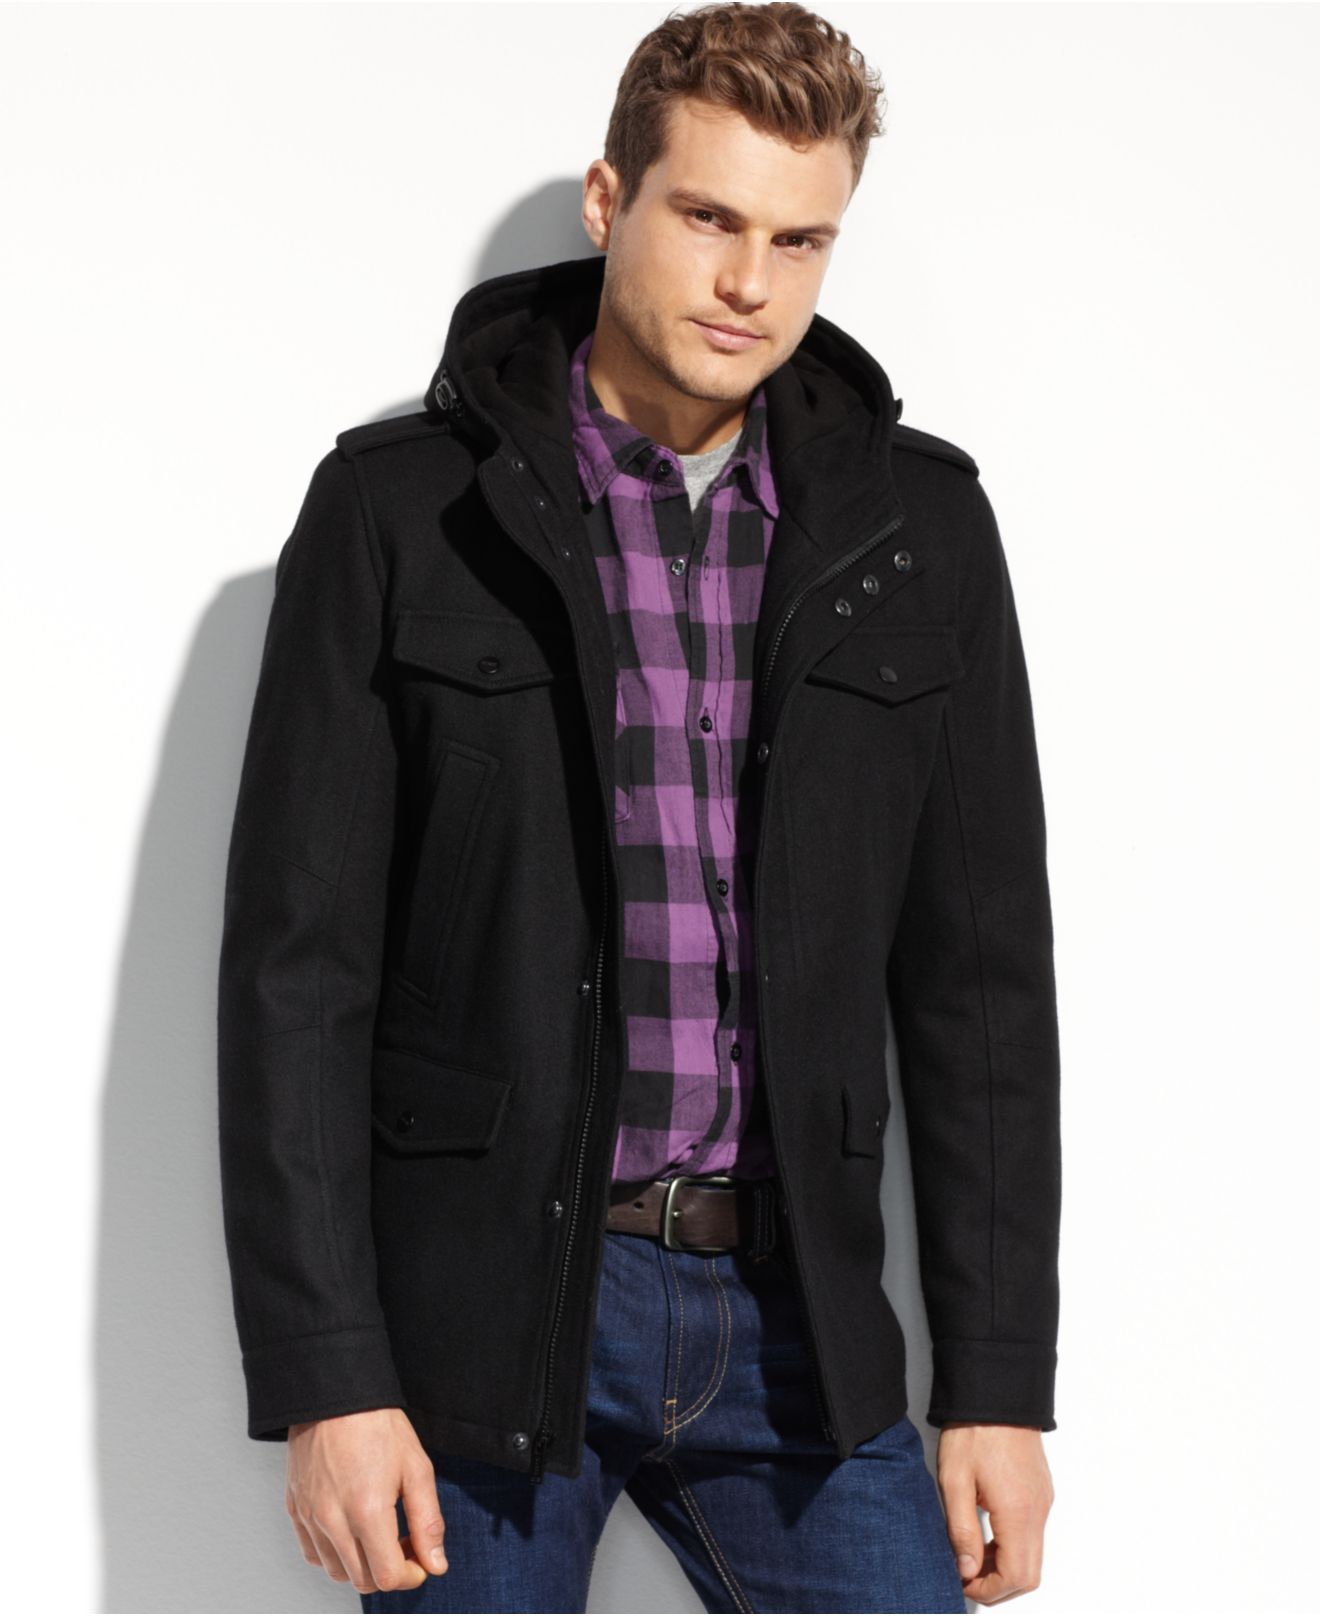 Shop the Latest Collection of Hooded Jackets & Coats for Men Online at thritingetqay.cf FREE SHIPPING AVAILABLE! Macy's Presents: The Edit - A curated mix of fashion and inspiration Check It Out Free Shipping with $49 purchase + Free Store Pickup.